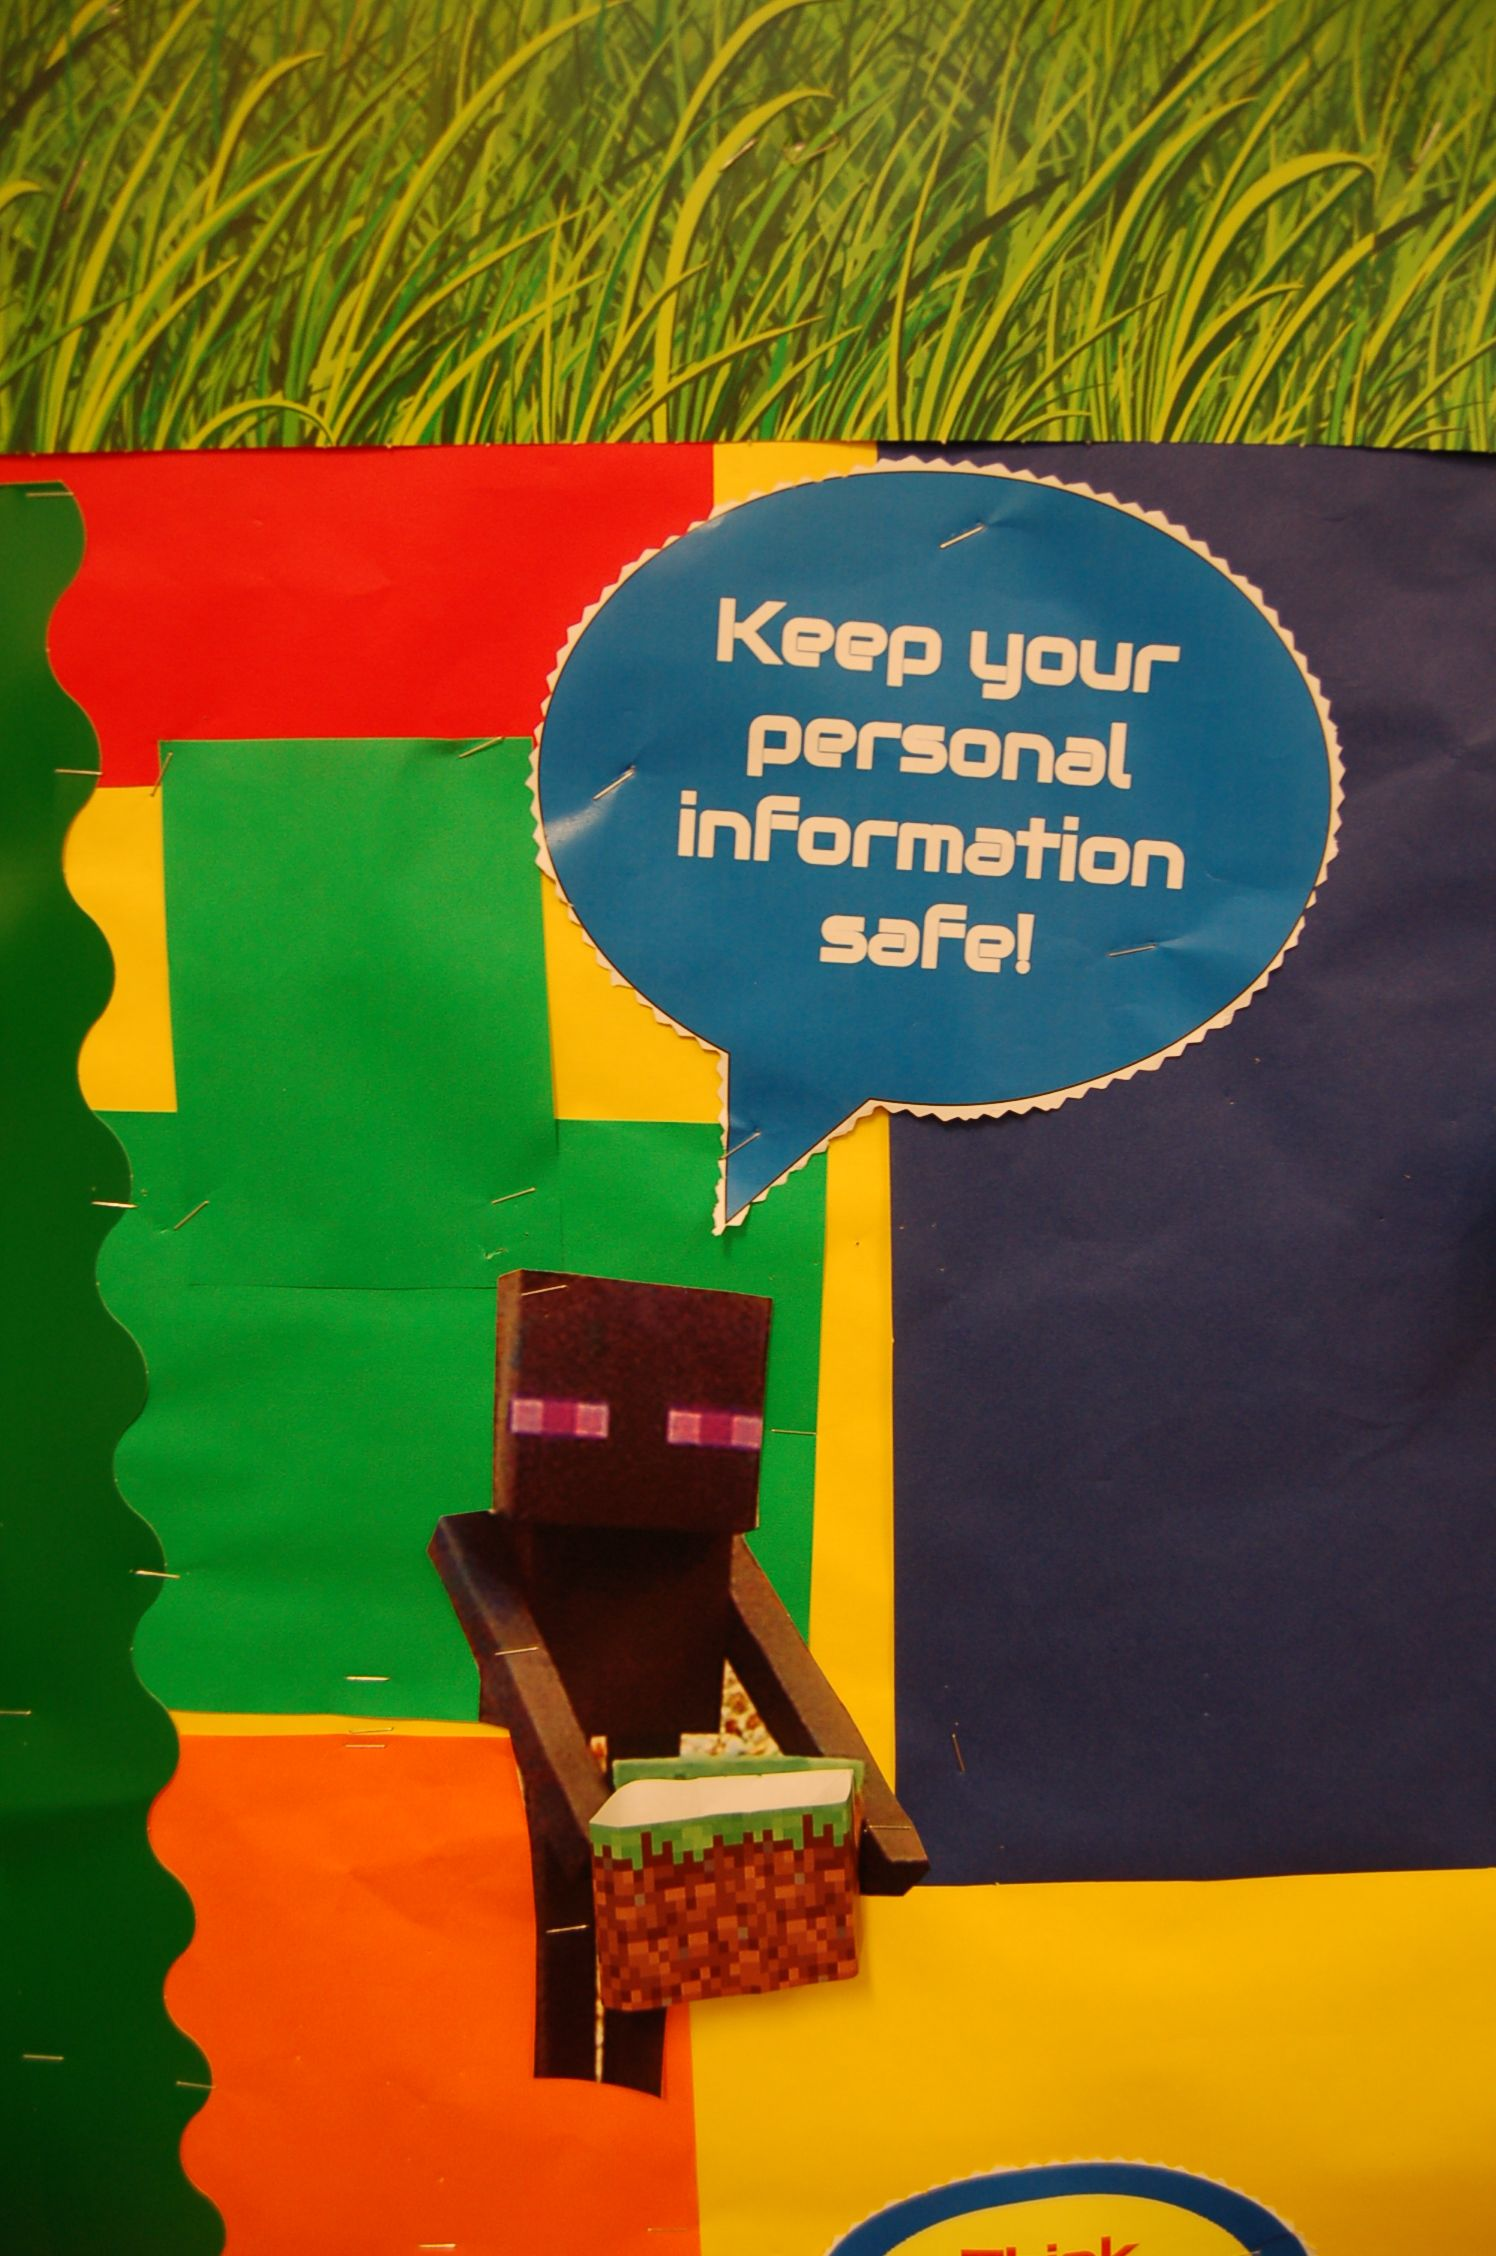 Keep your personal information safe!